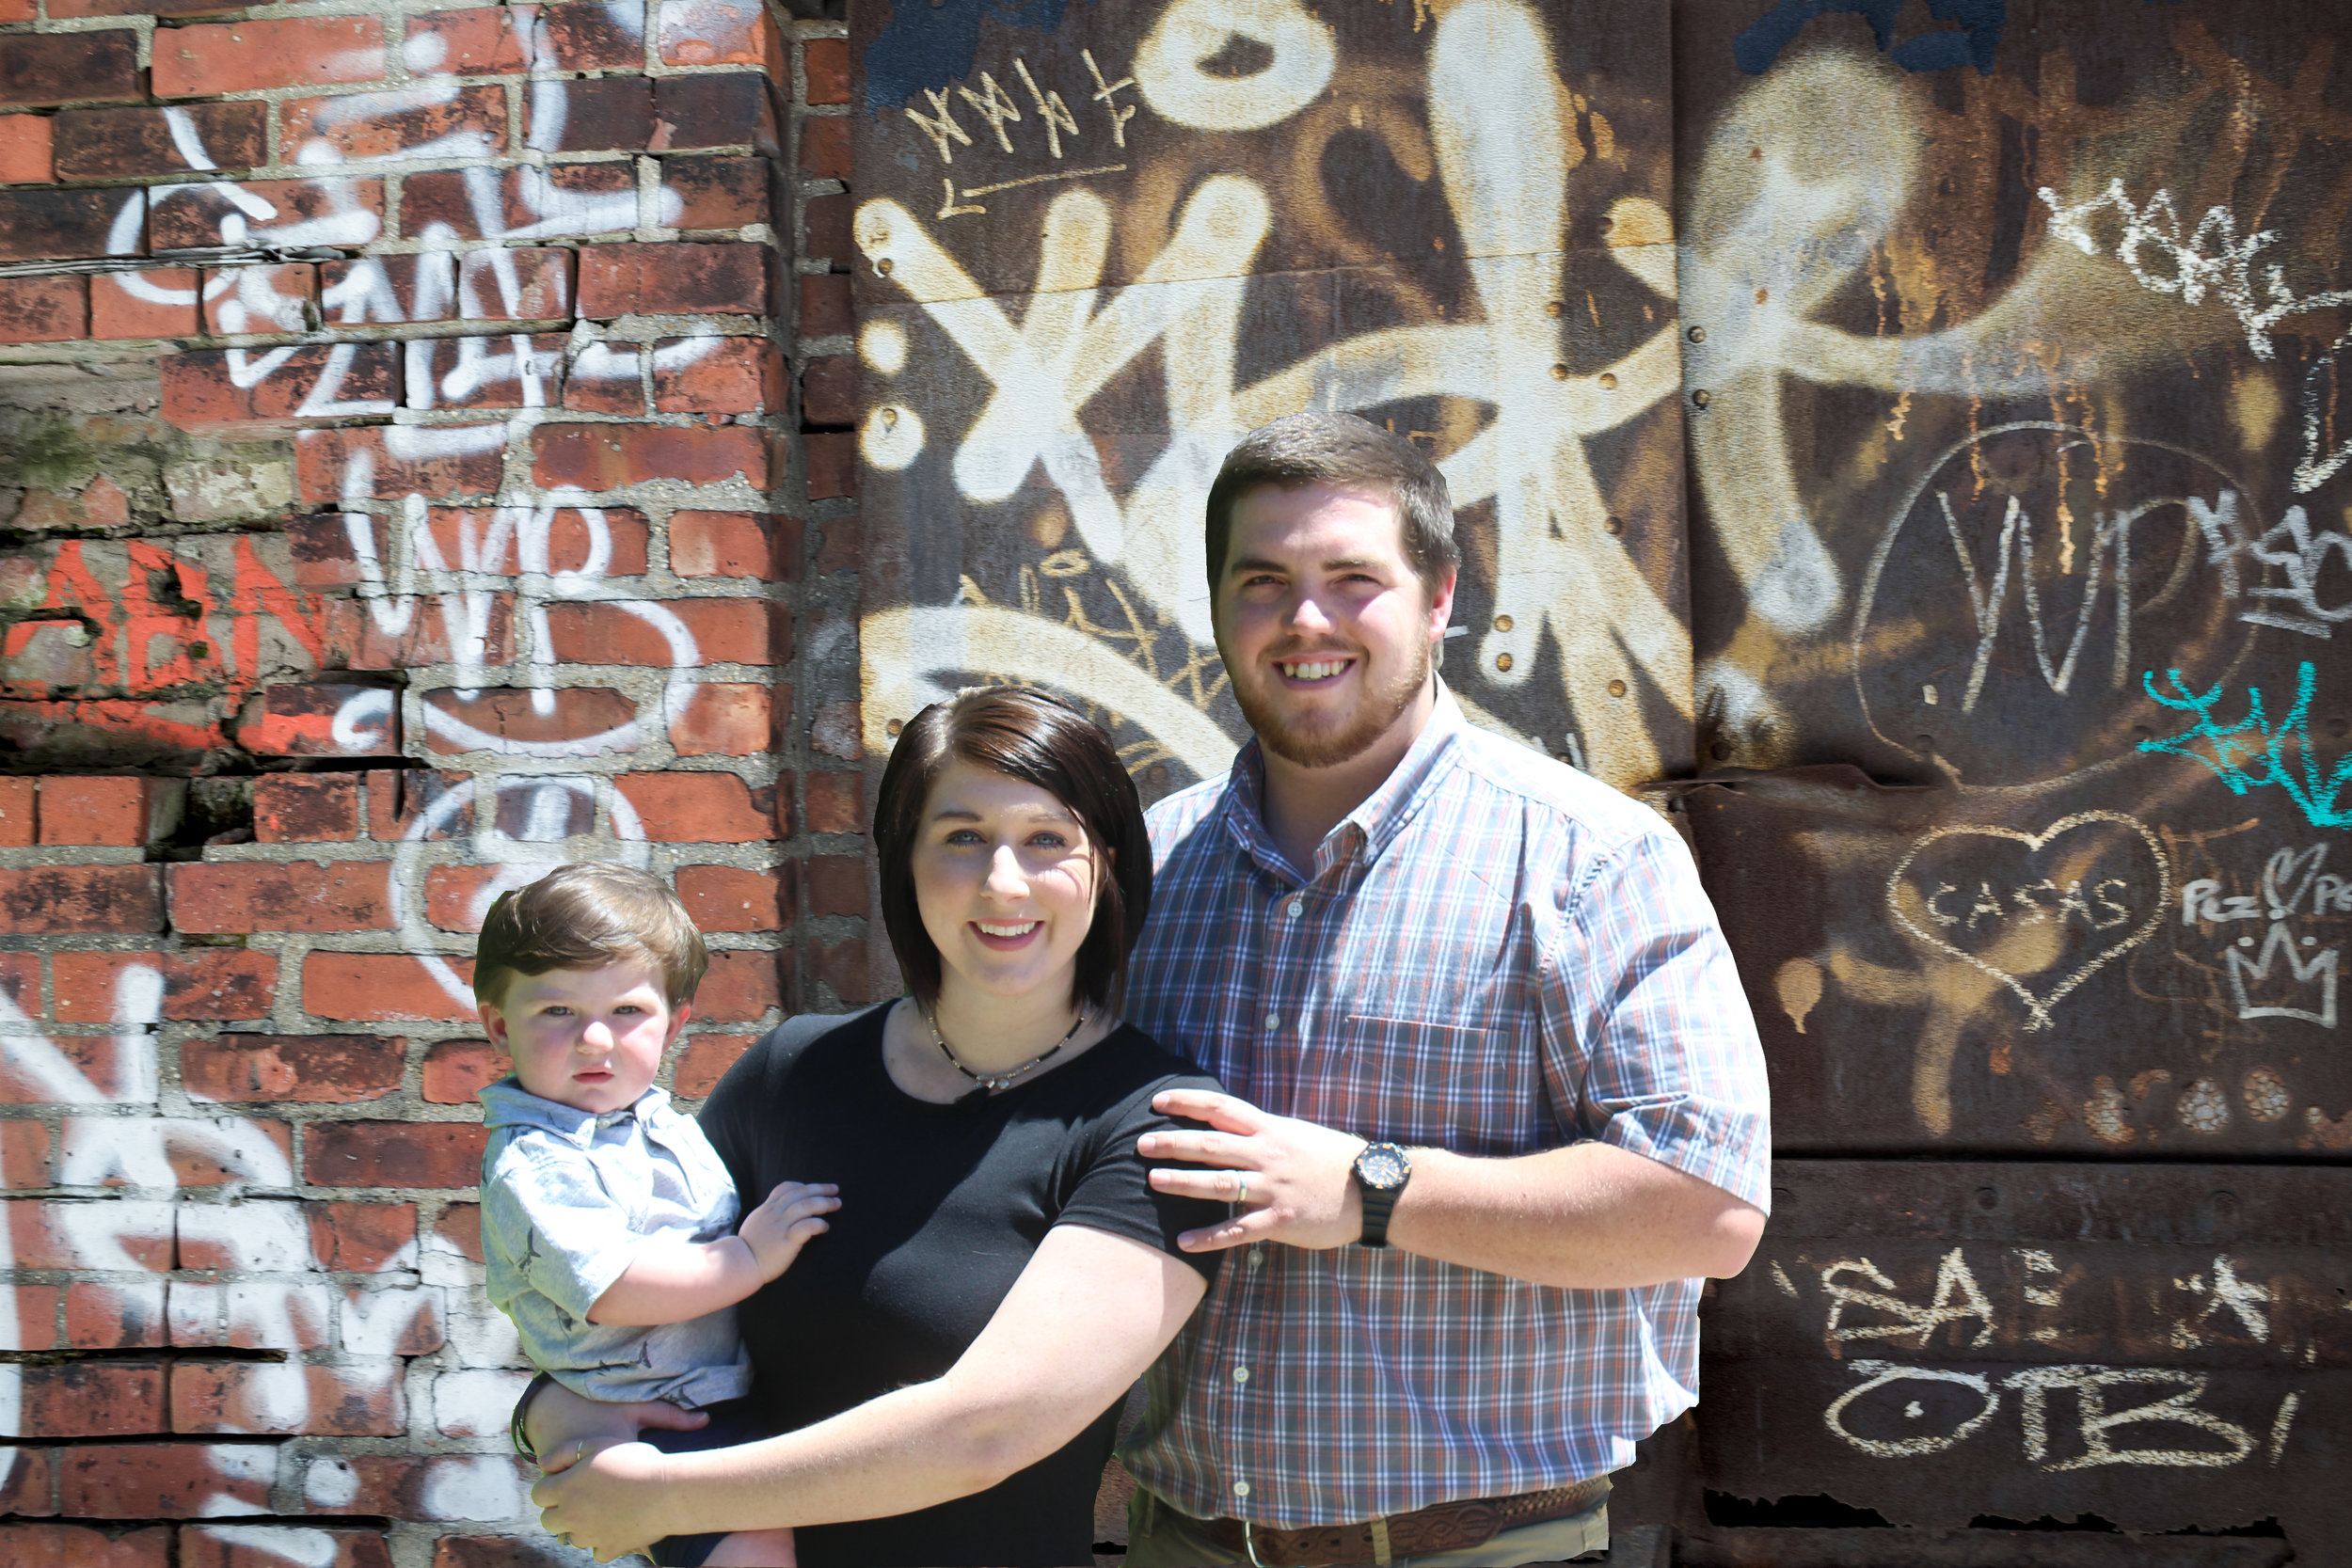 Graffiti Missionary Ben east & family